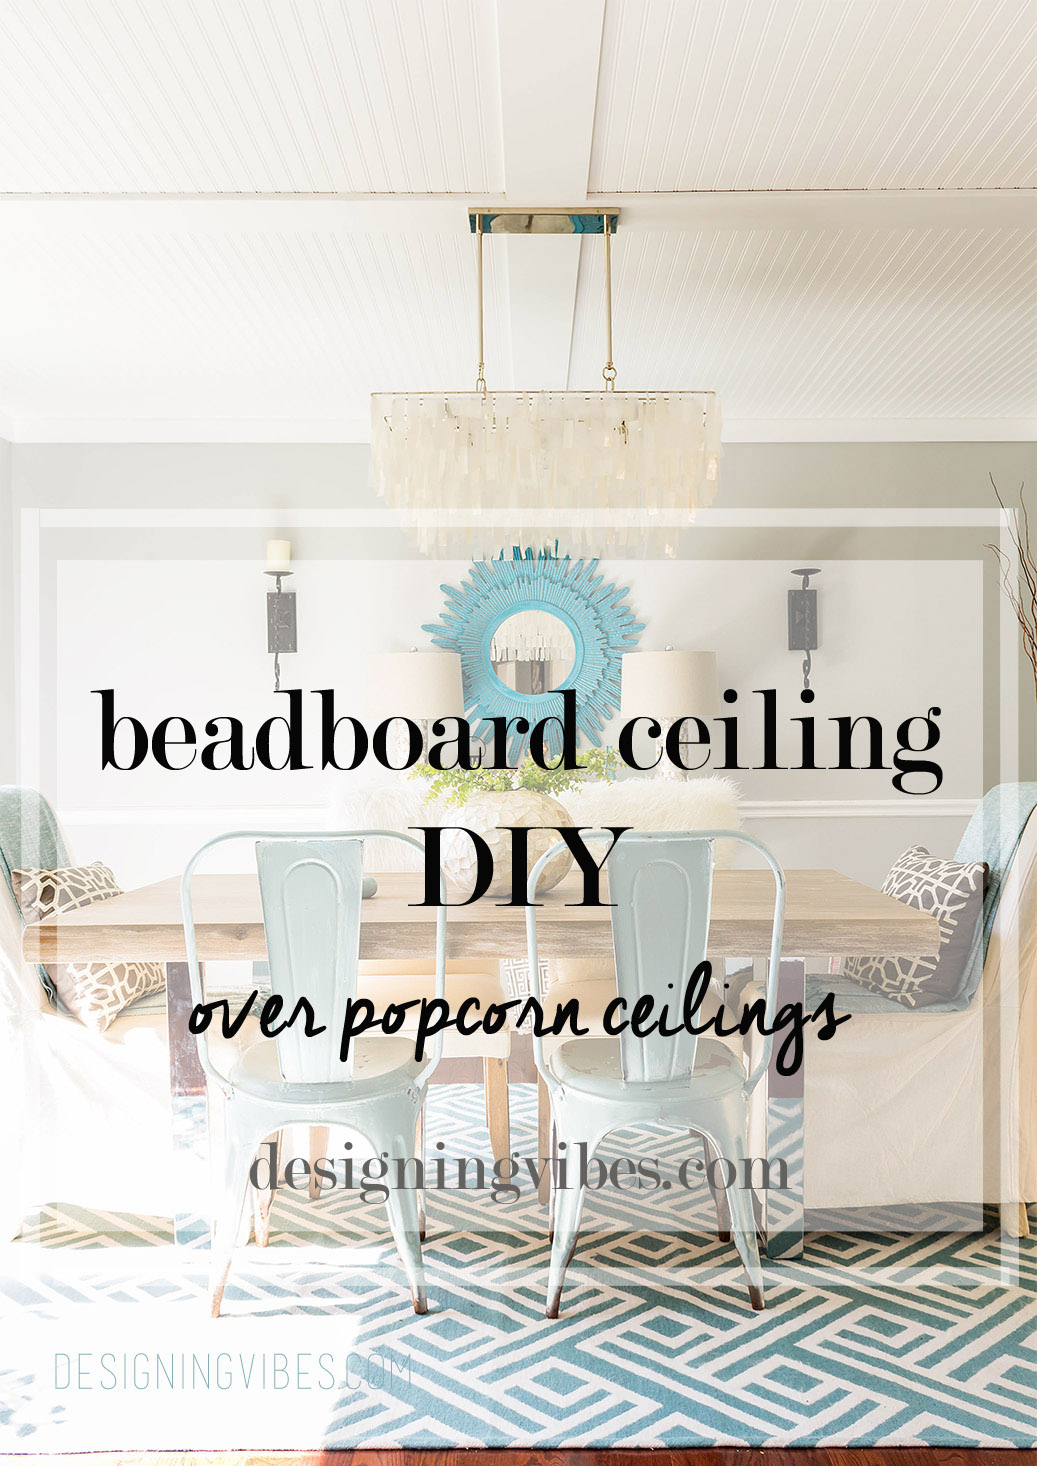 Beadboard Planks Over Popcorn Ceiling DIY